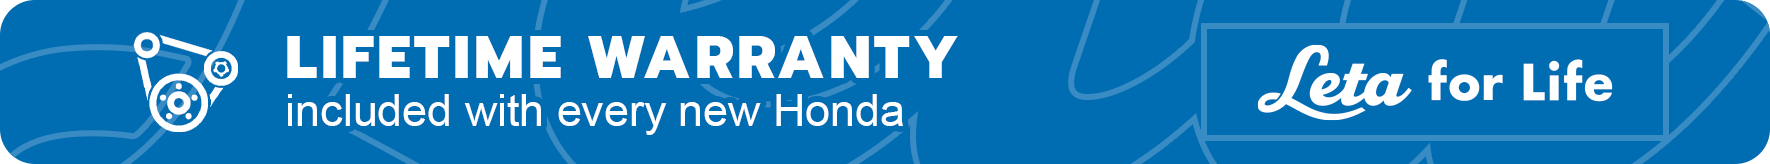 Lifetime Warranty St Louis Honda dealer